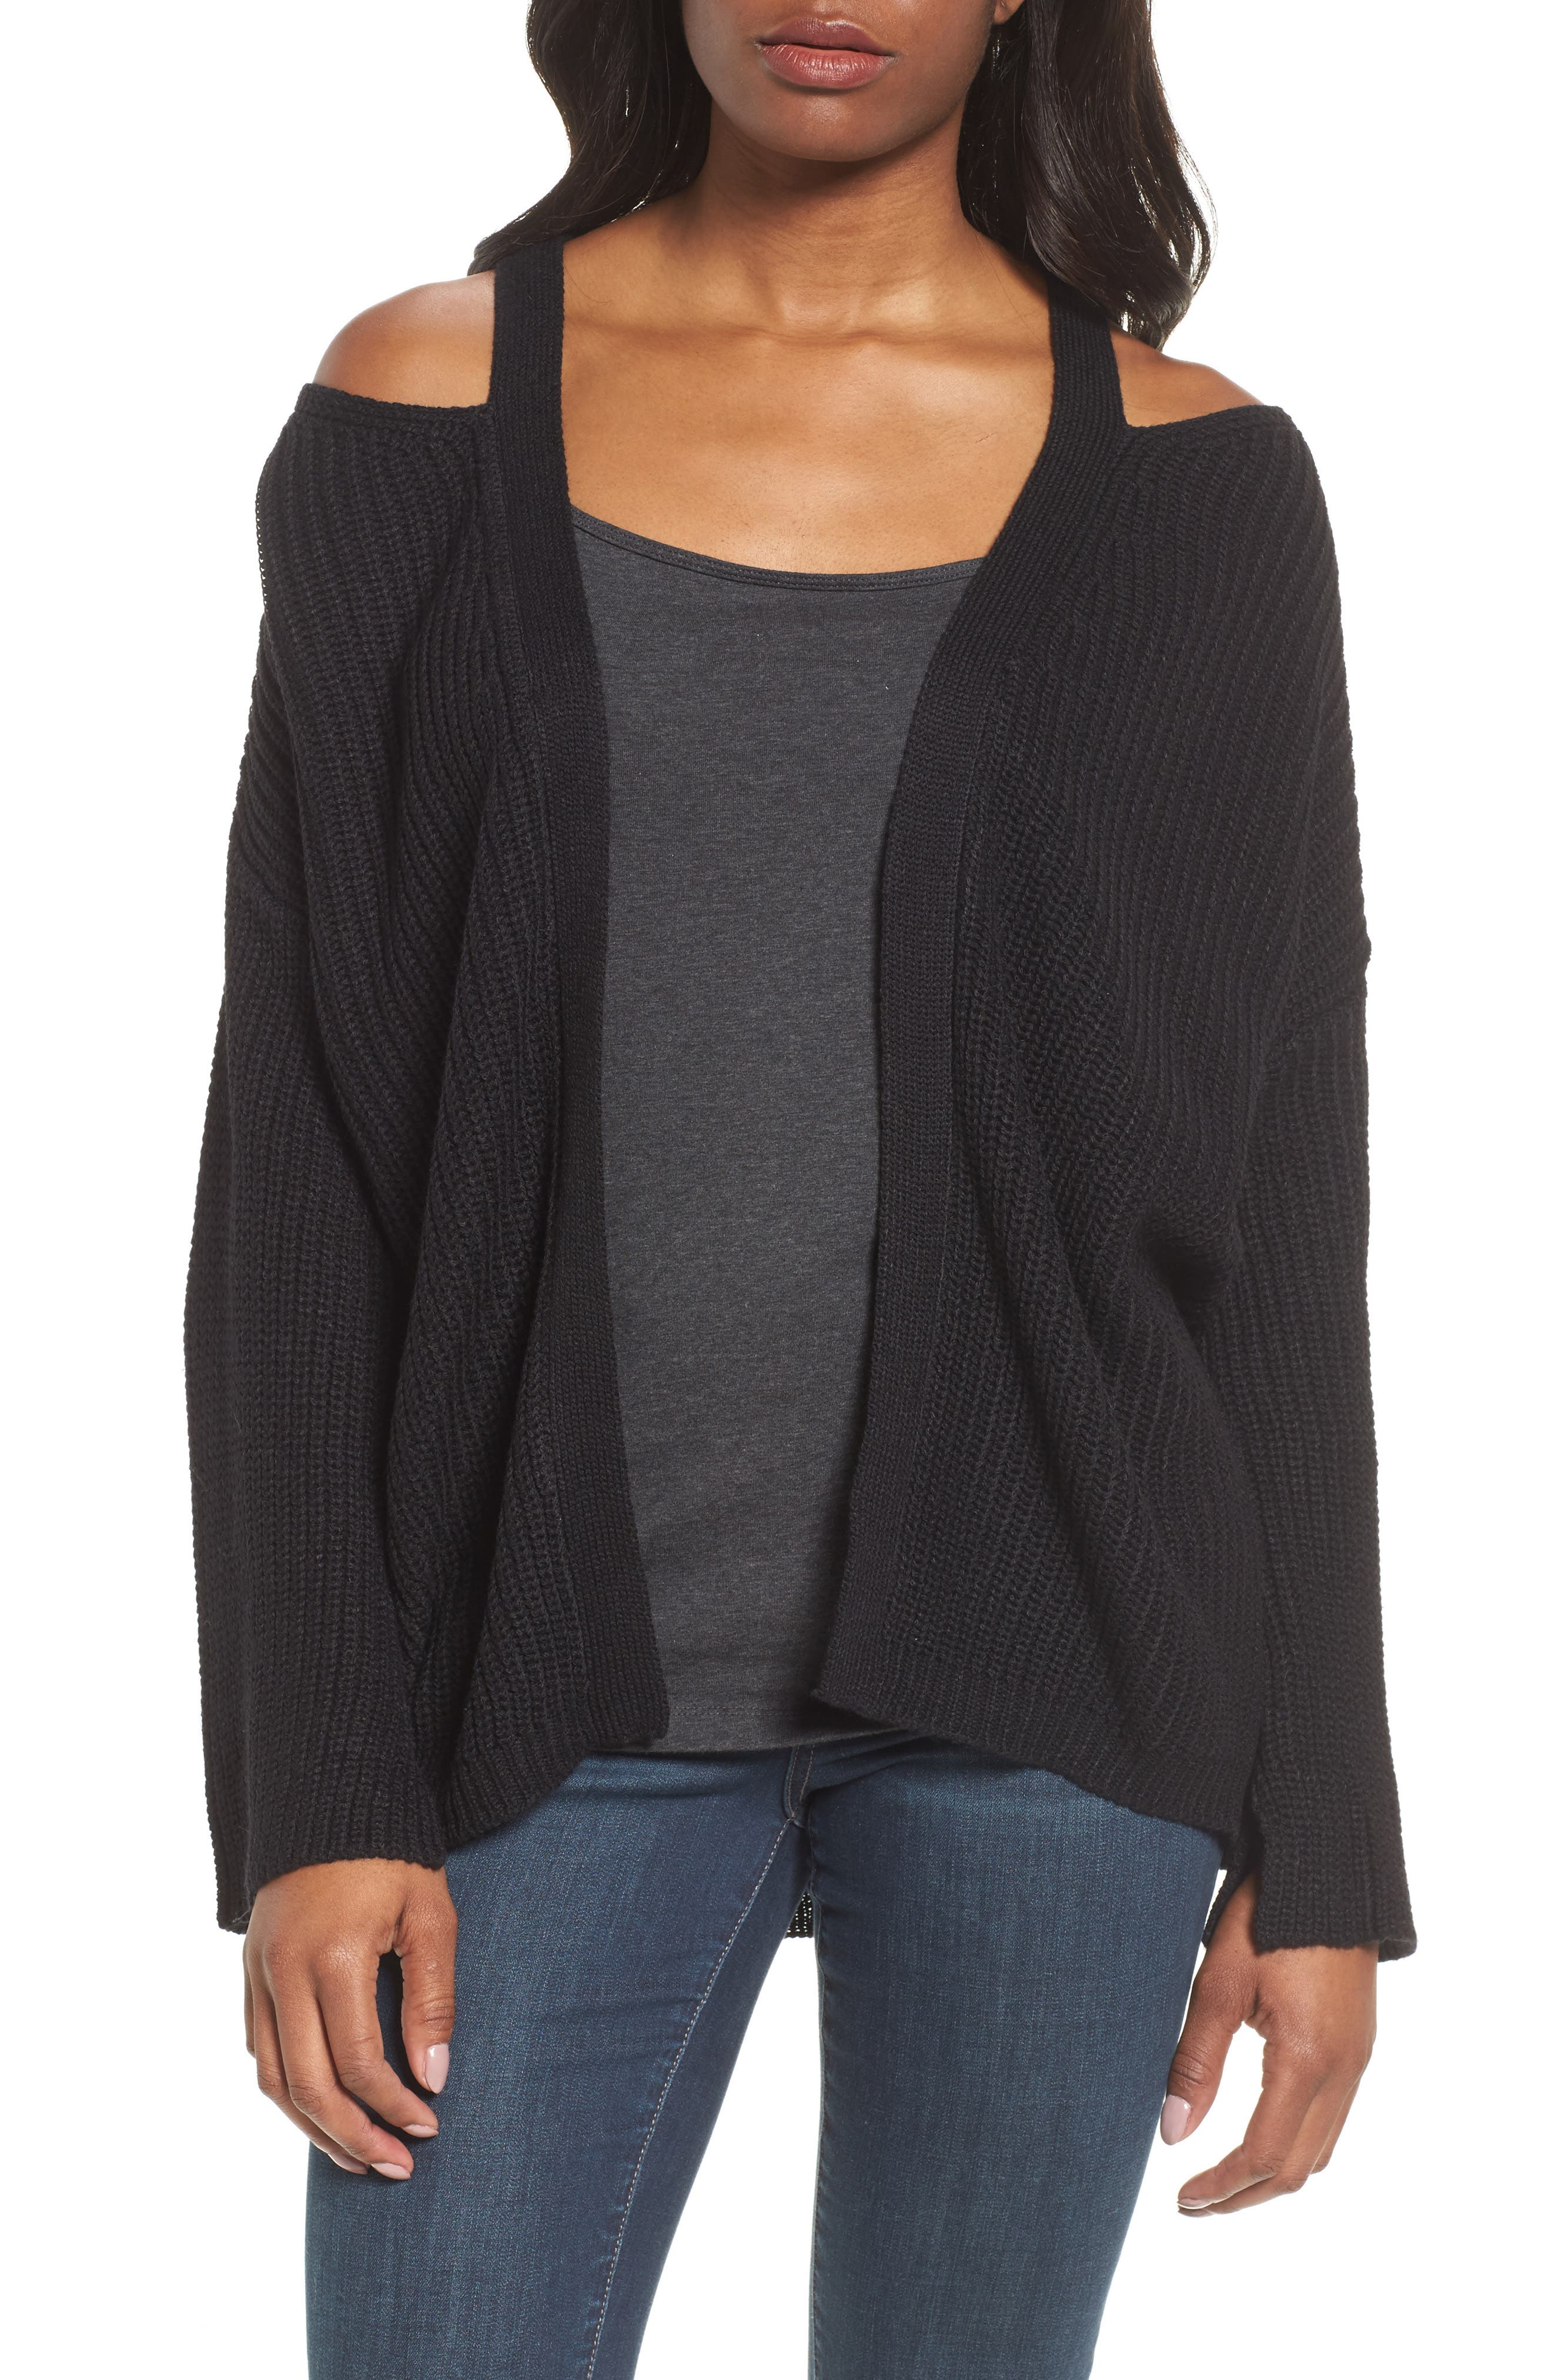 Cutout Cardigan,                             Main thumbnail 1, color,                             Black